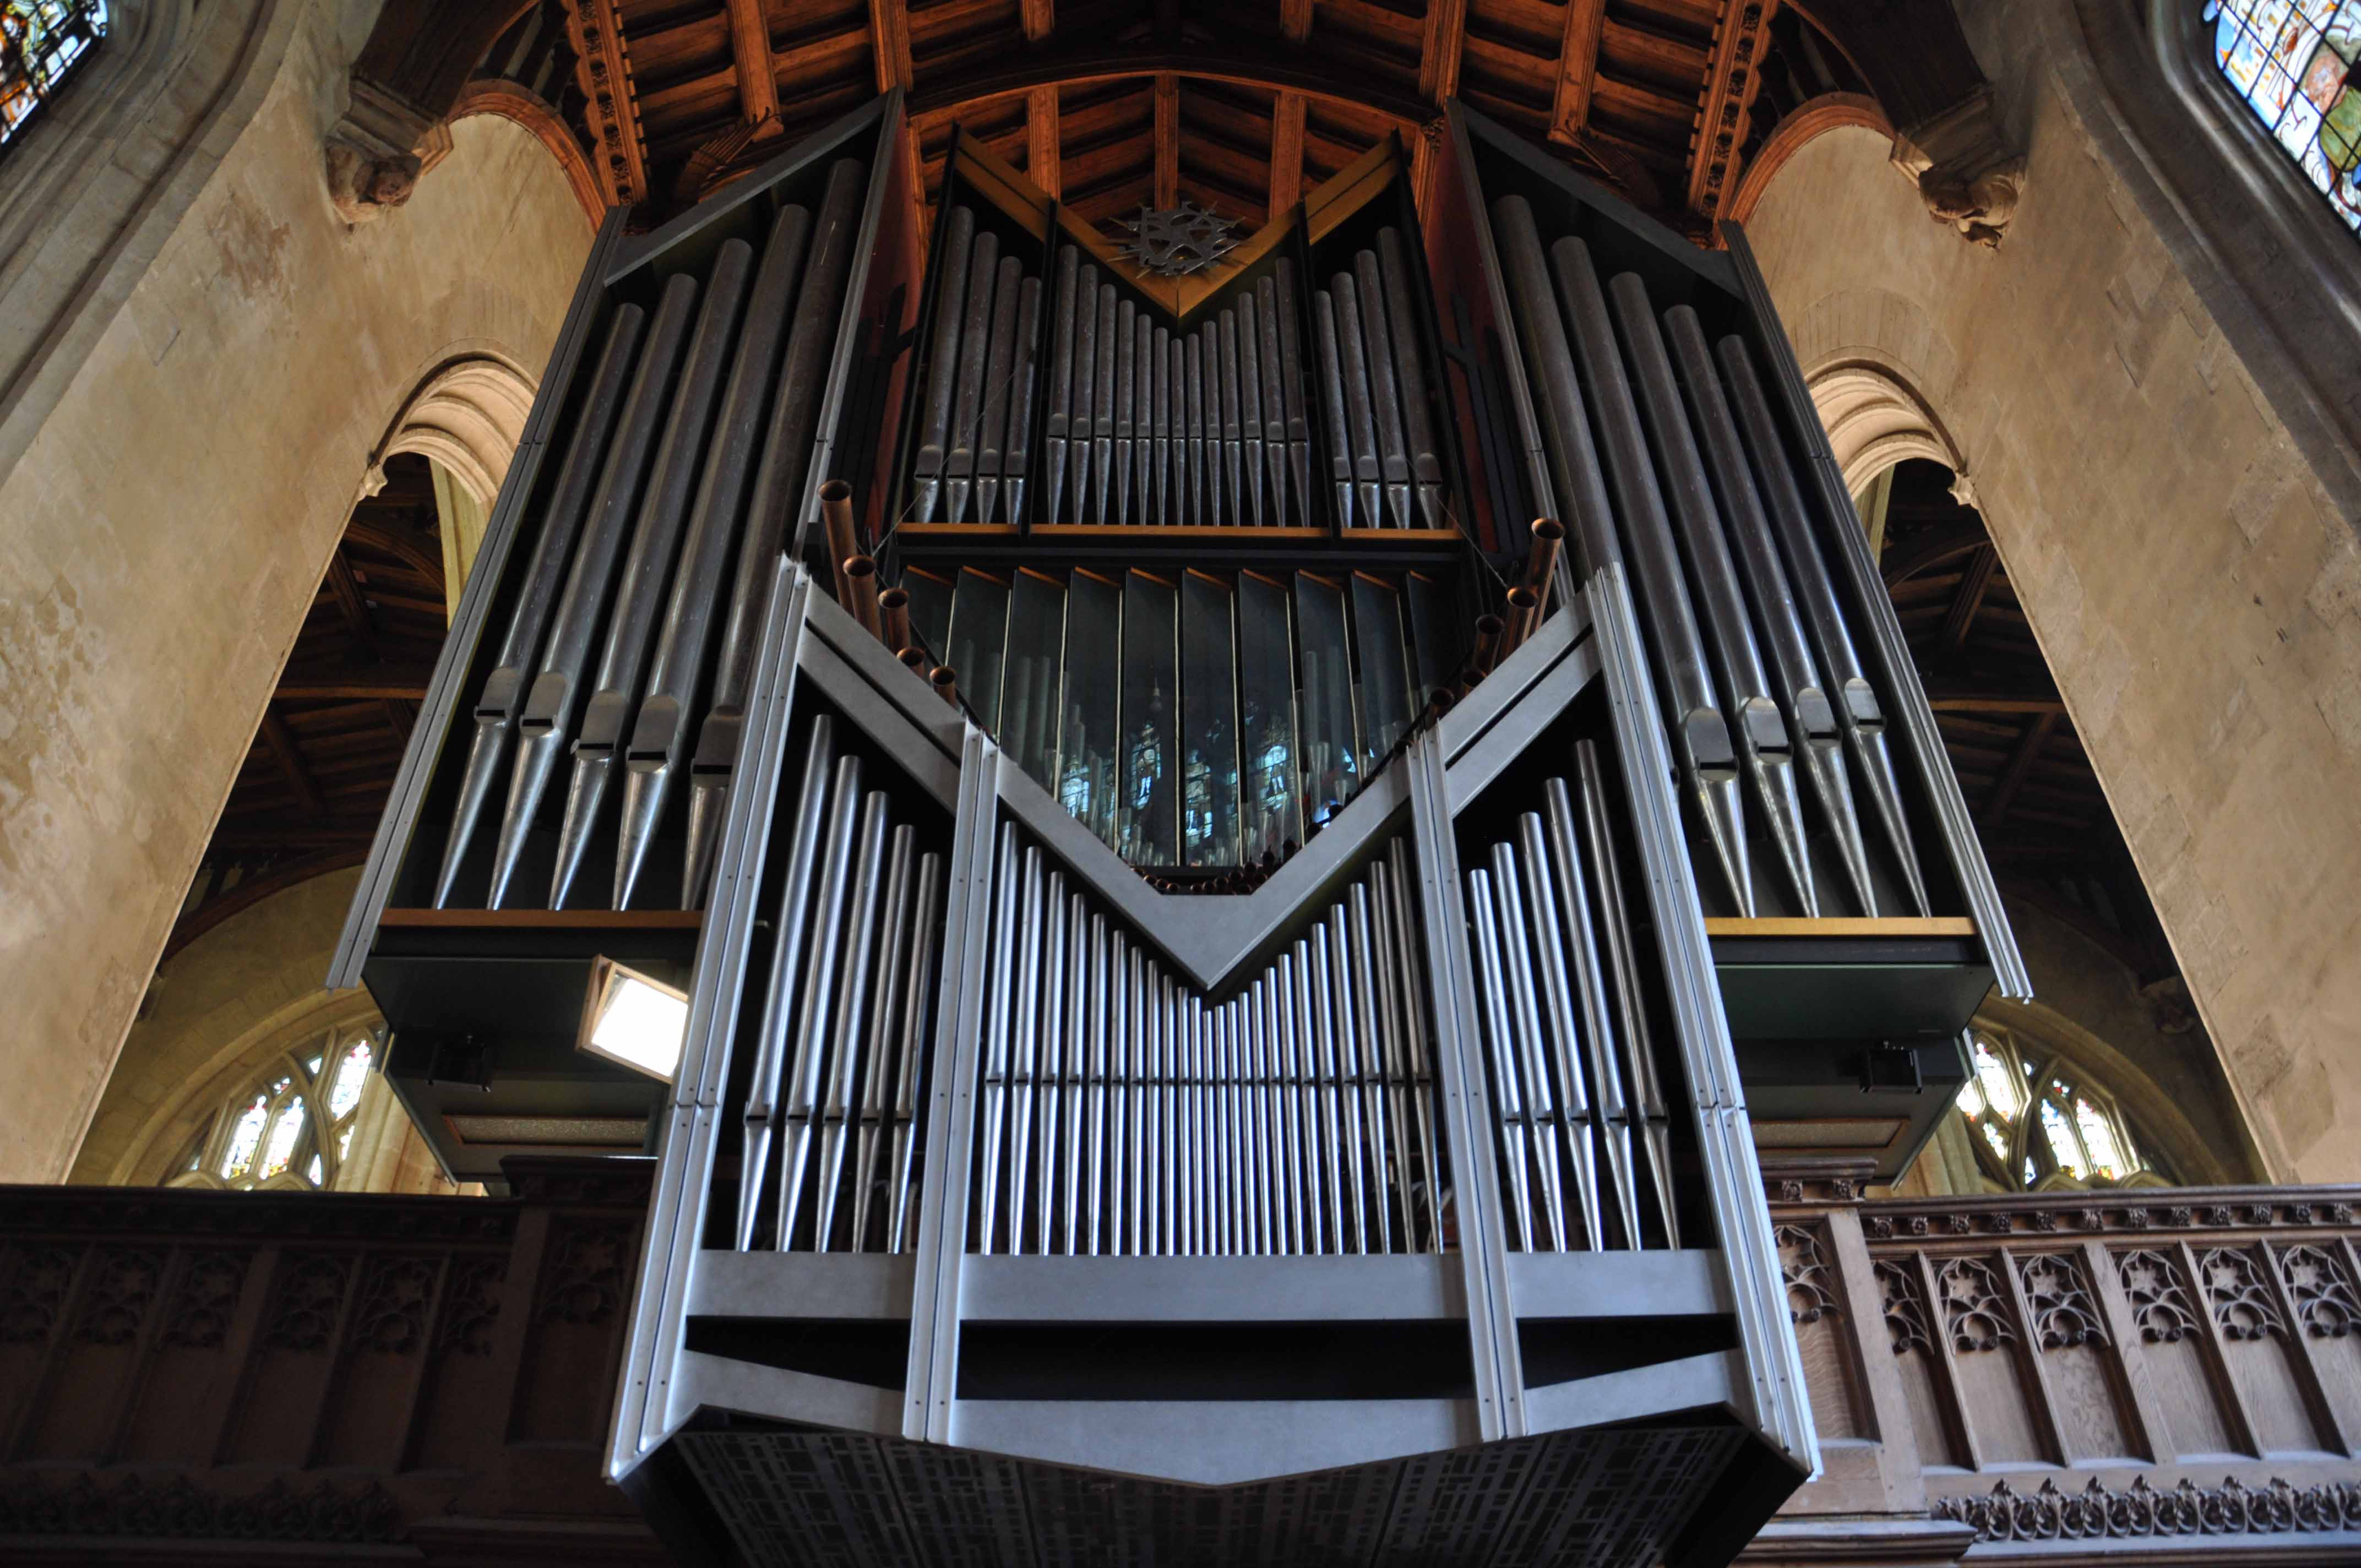 The Organ in Chapel